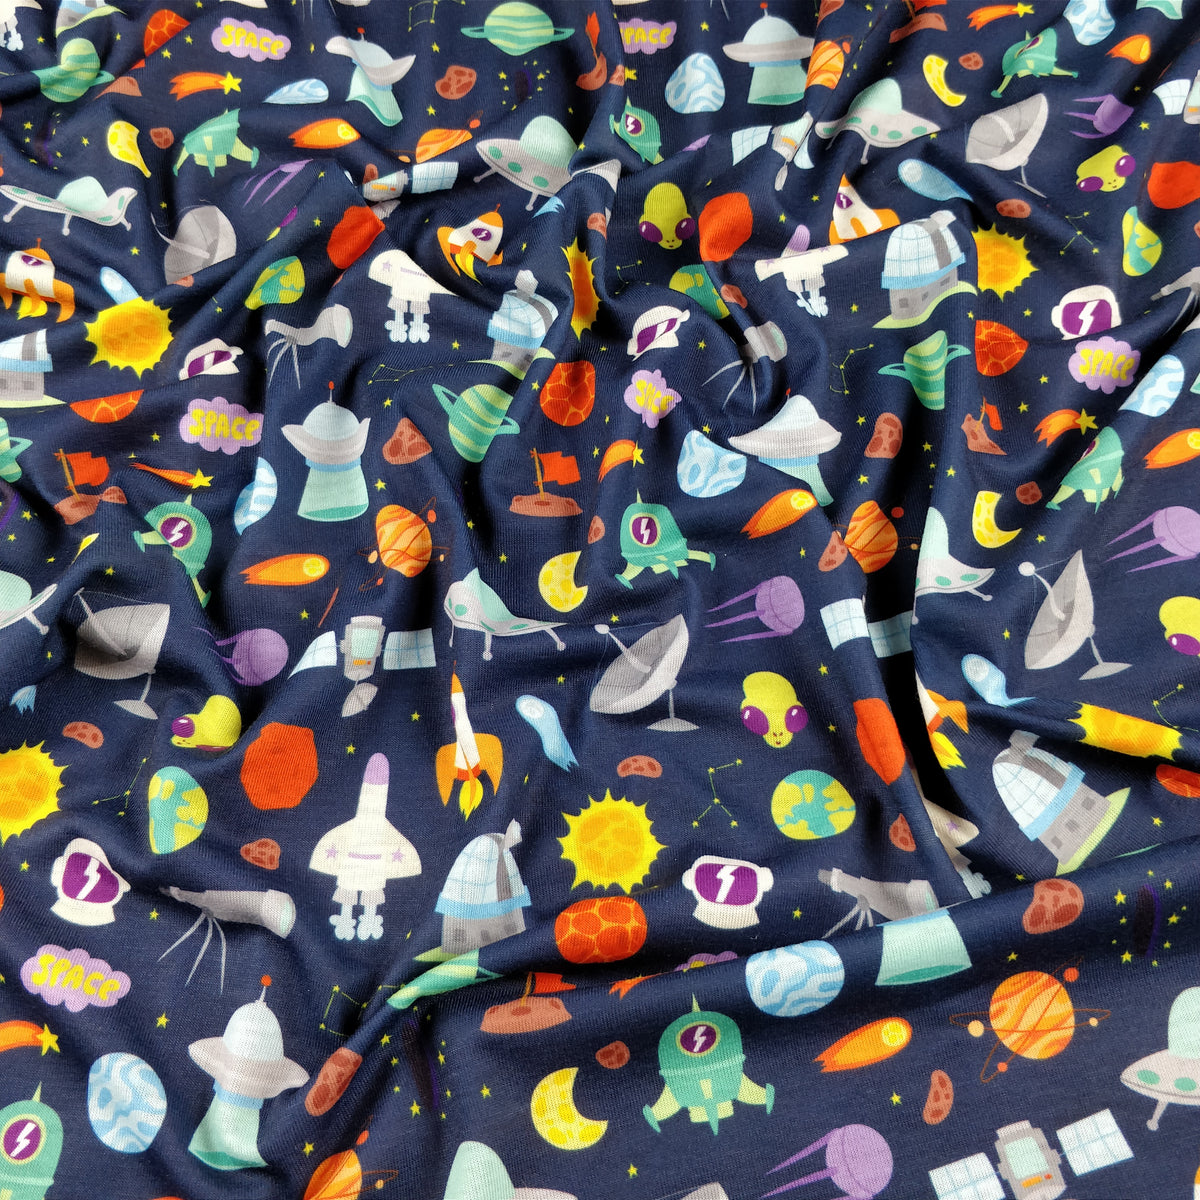 Fs176 space theme rockets planets fabric styles for Space unicorn fabric